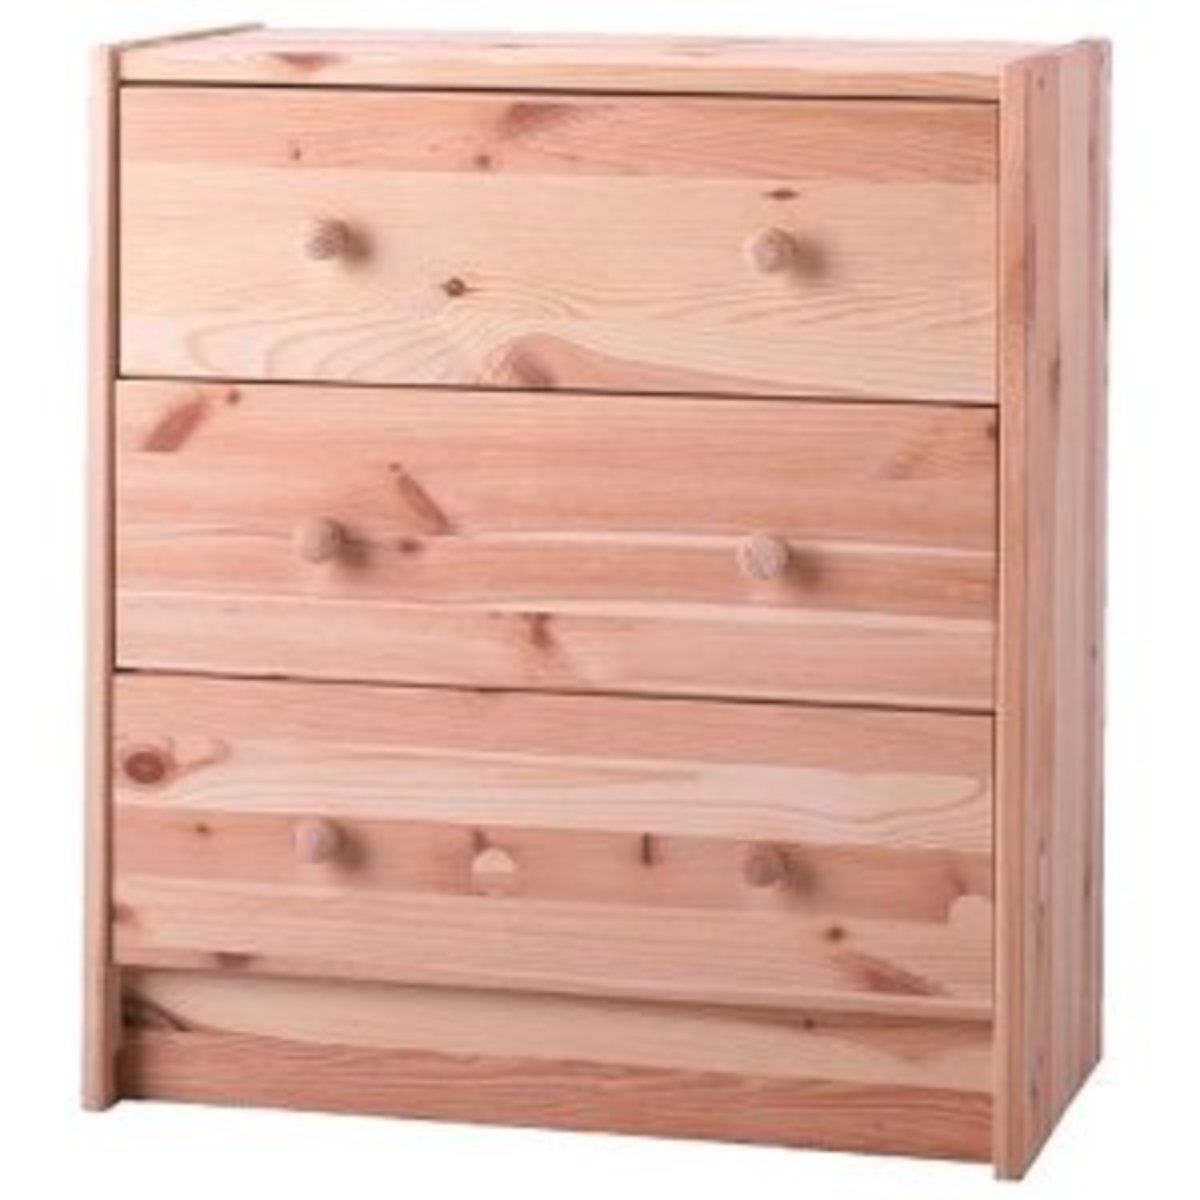 Assembly Instructions for Ikea Rast 3 Drawer Chest Dresser